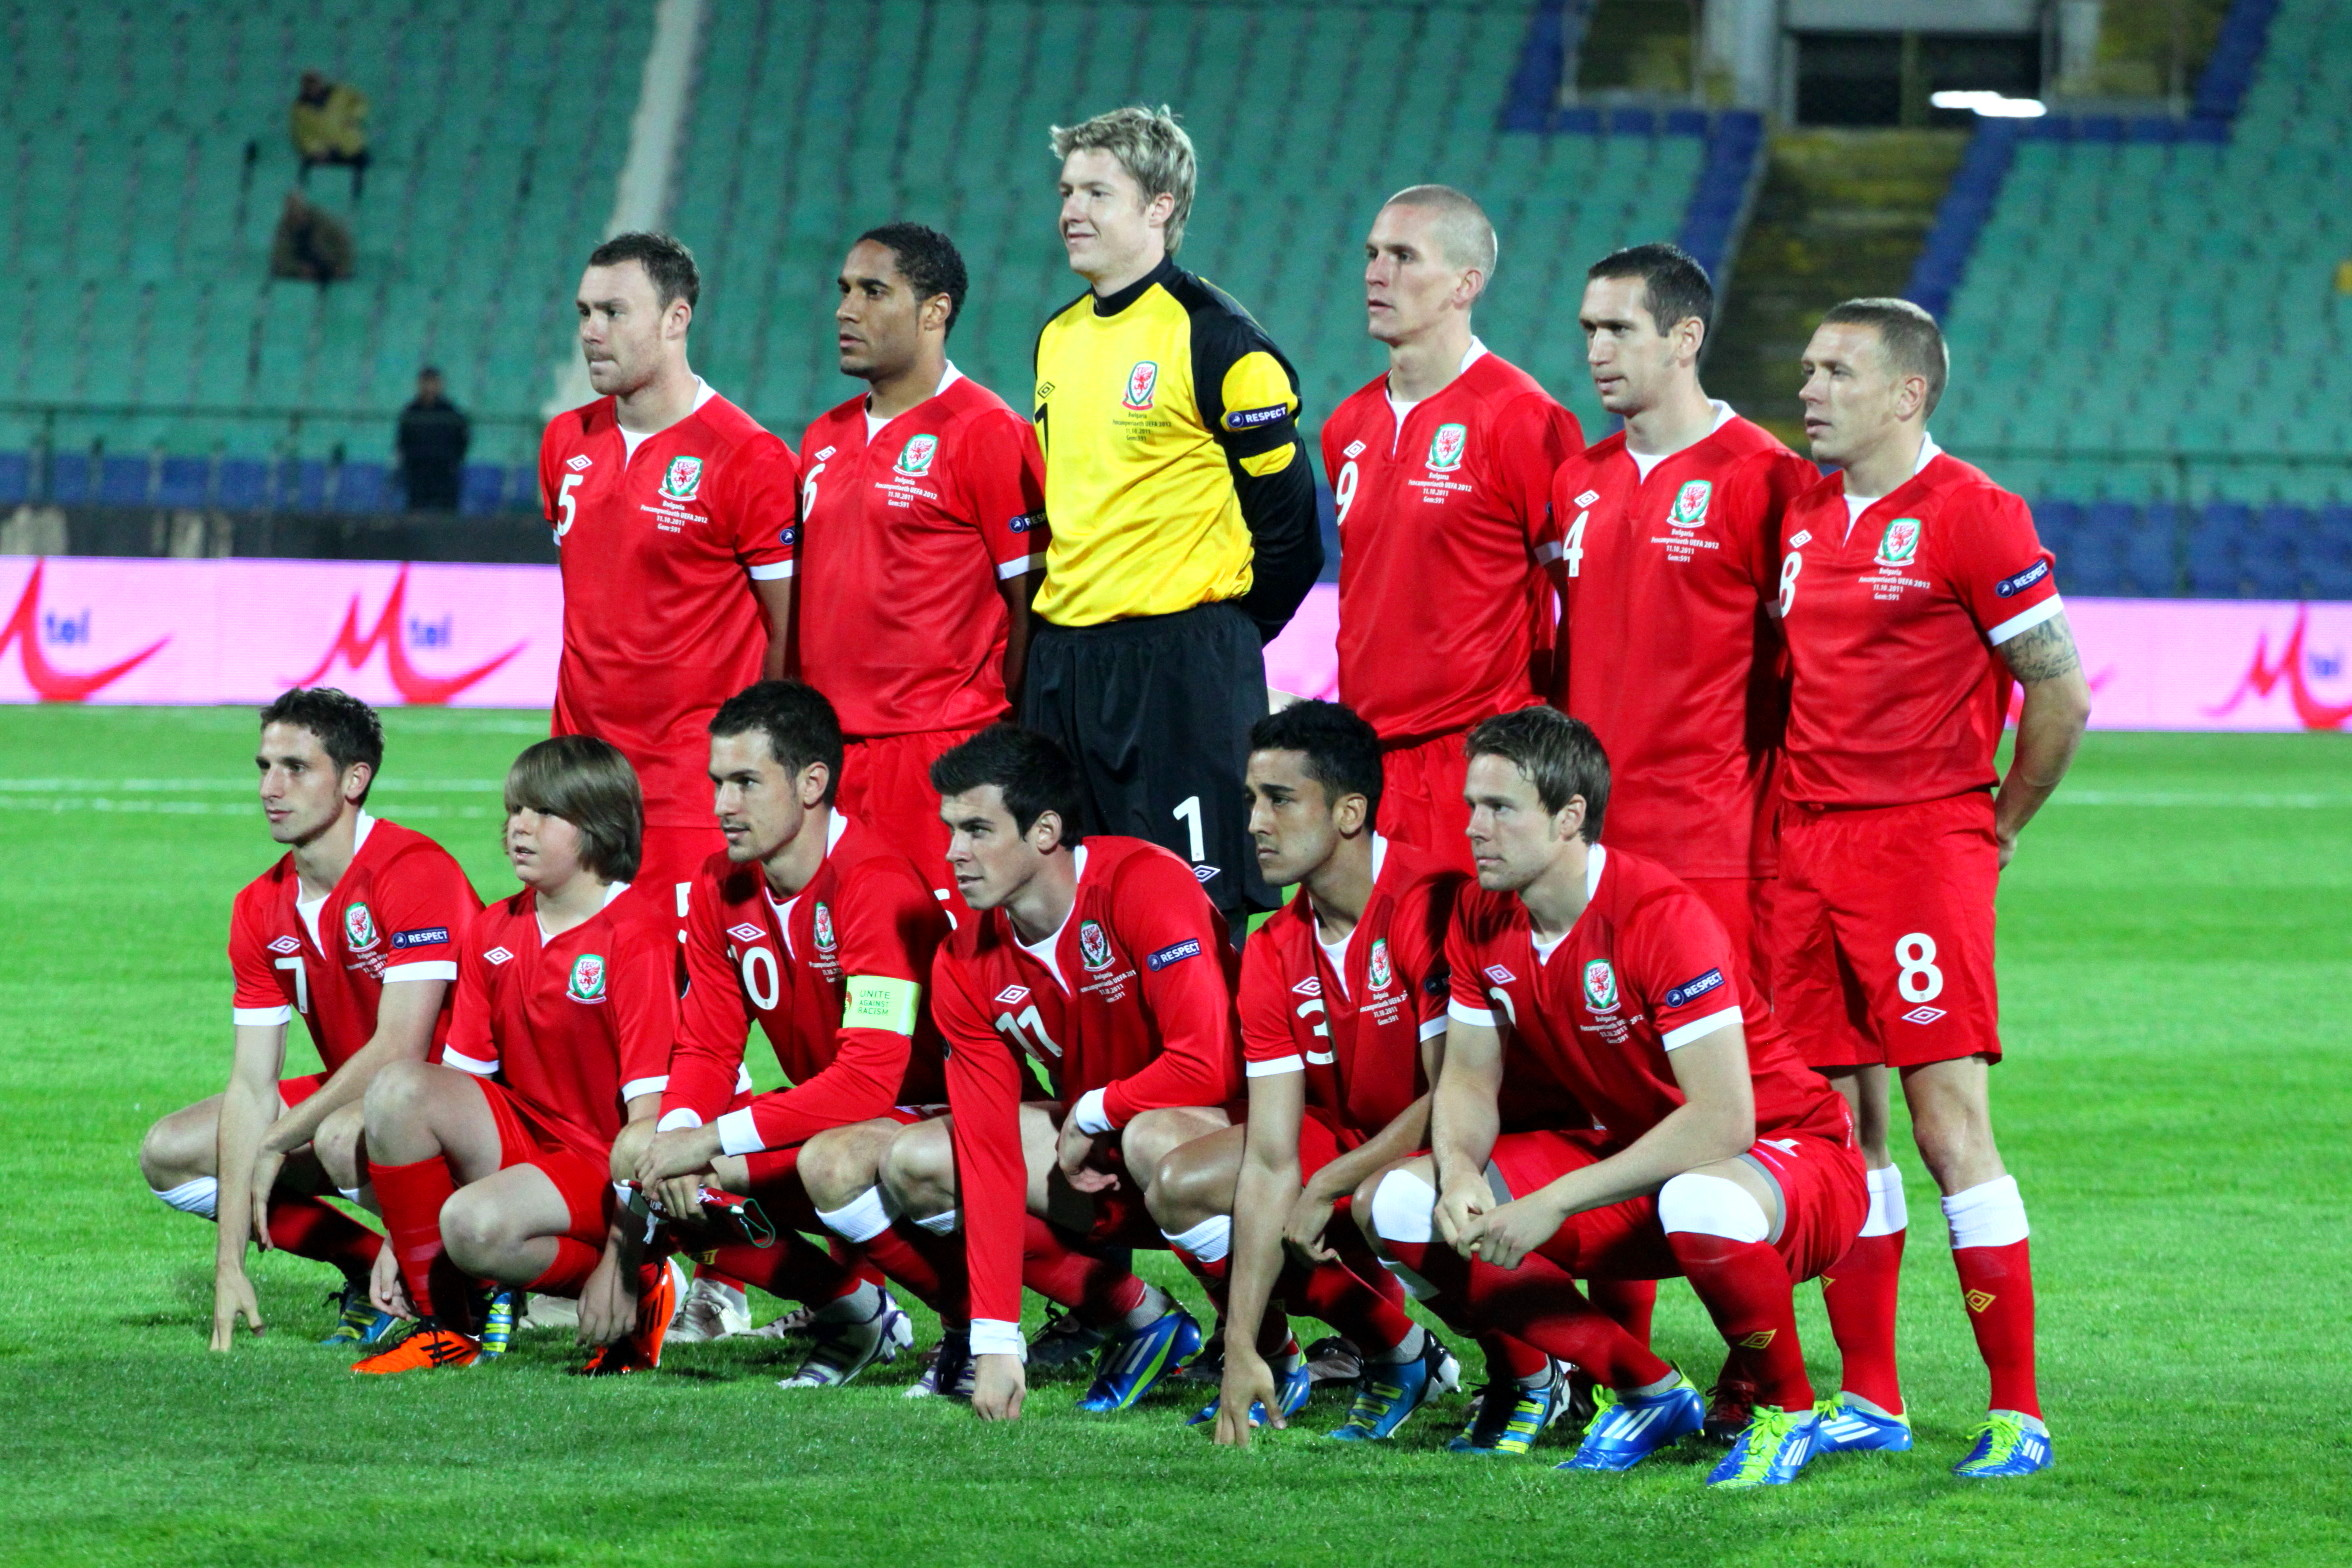 FileWales national football teamjpg   Wikimedia Commons 2352x1568